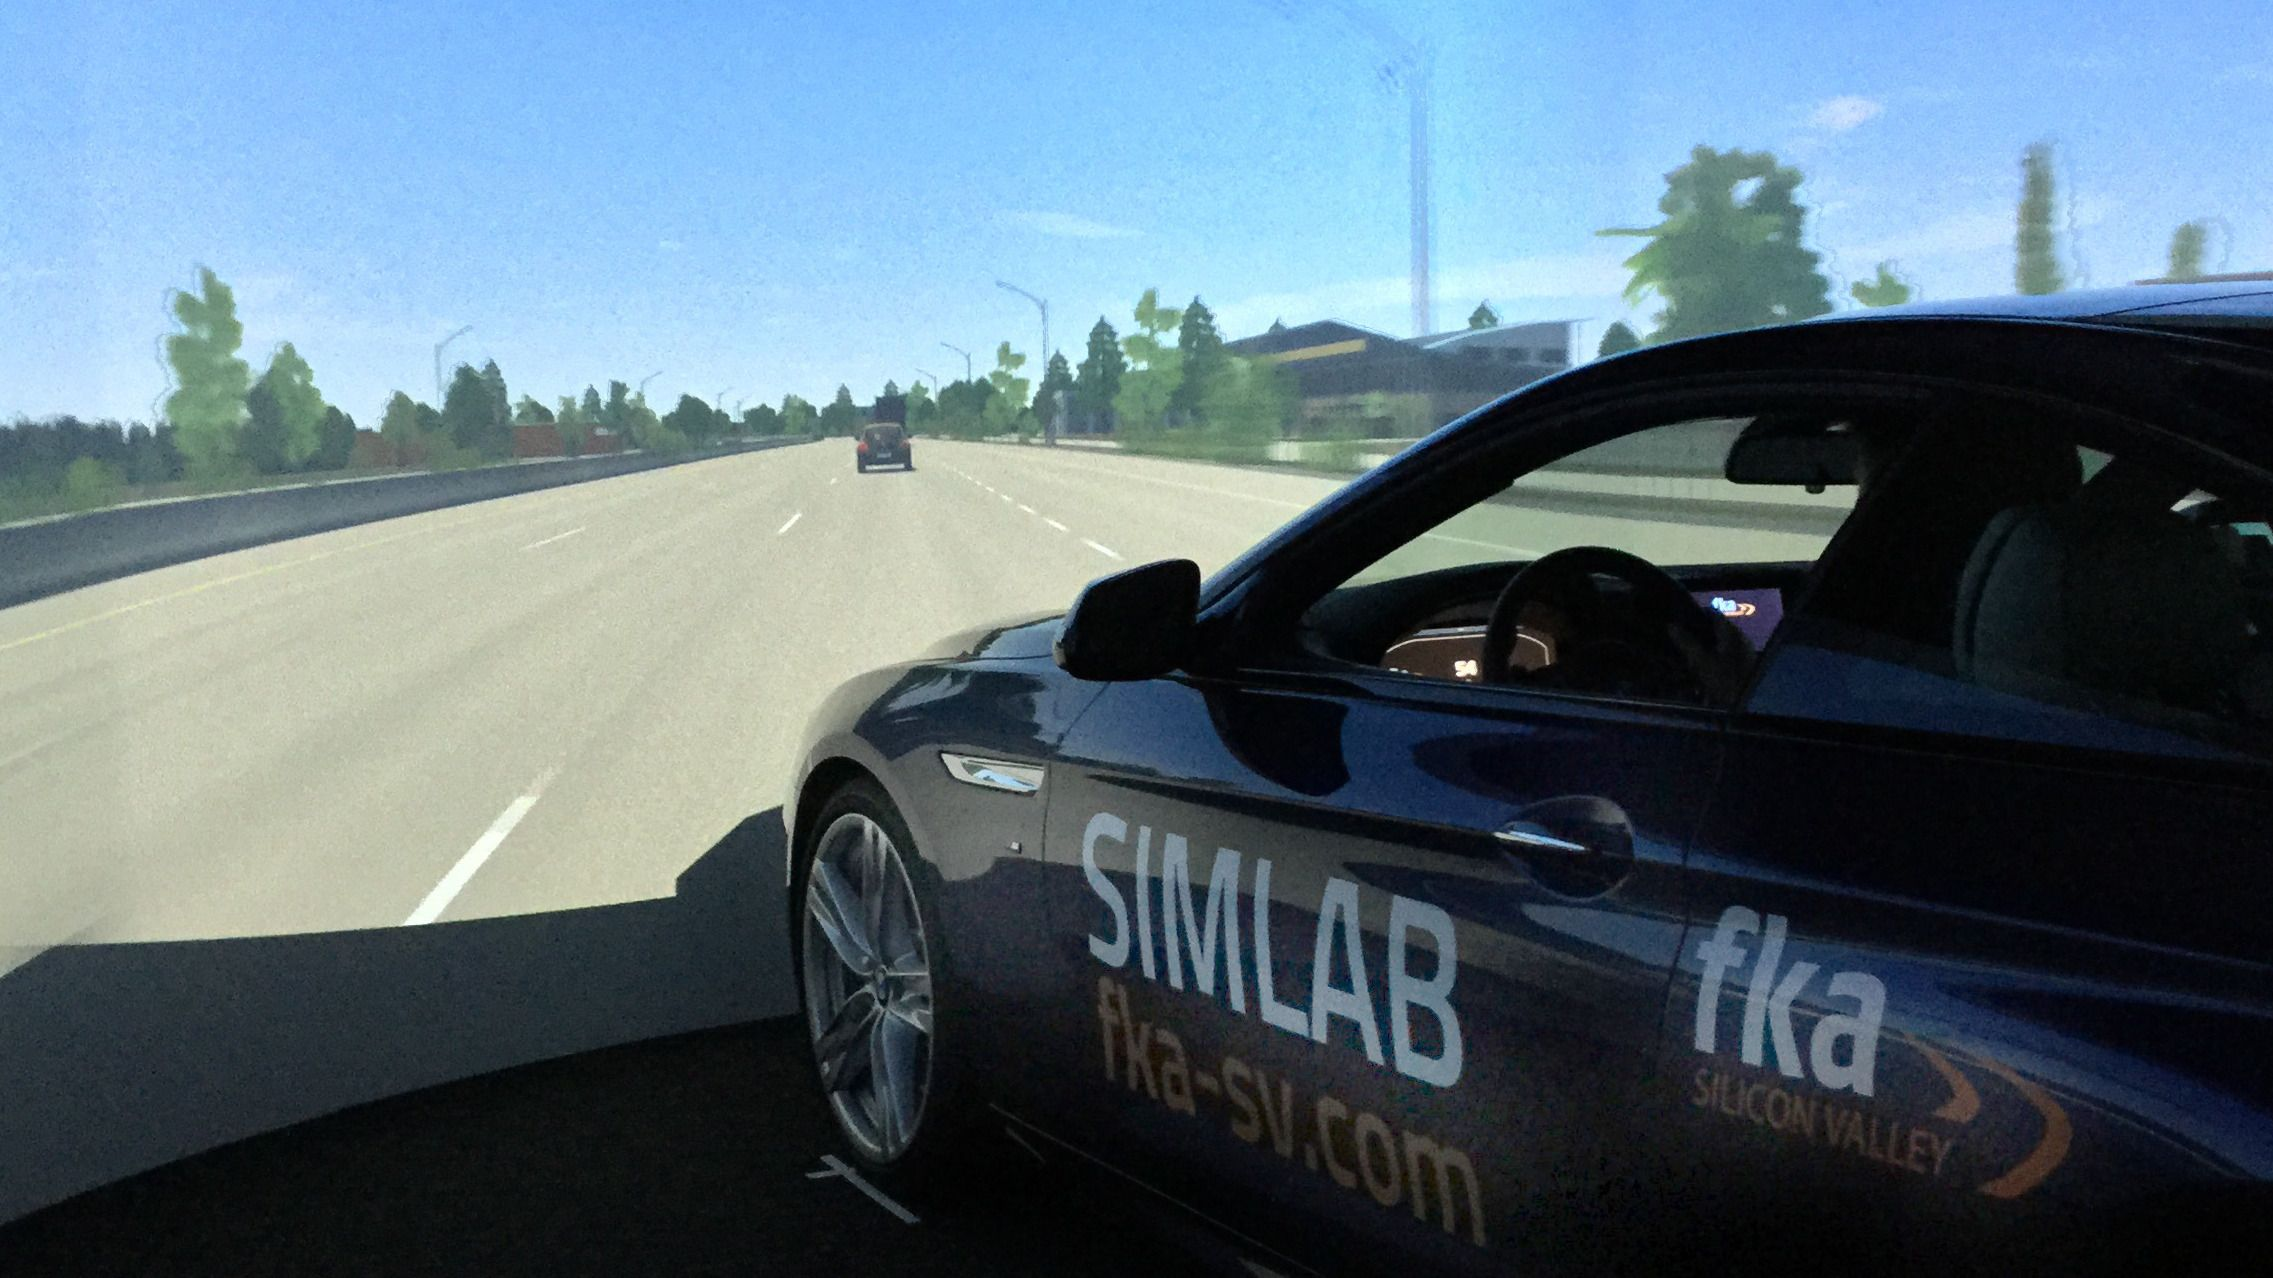 SAE Innovations in Mobility - SV